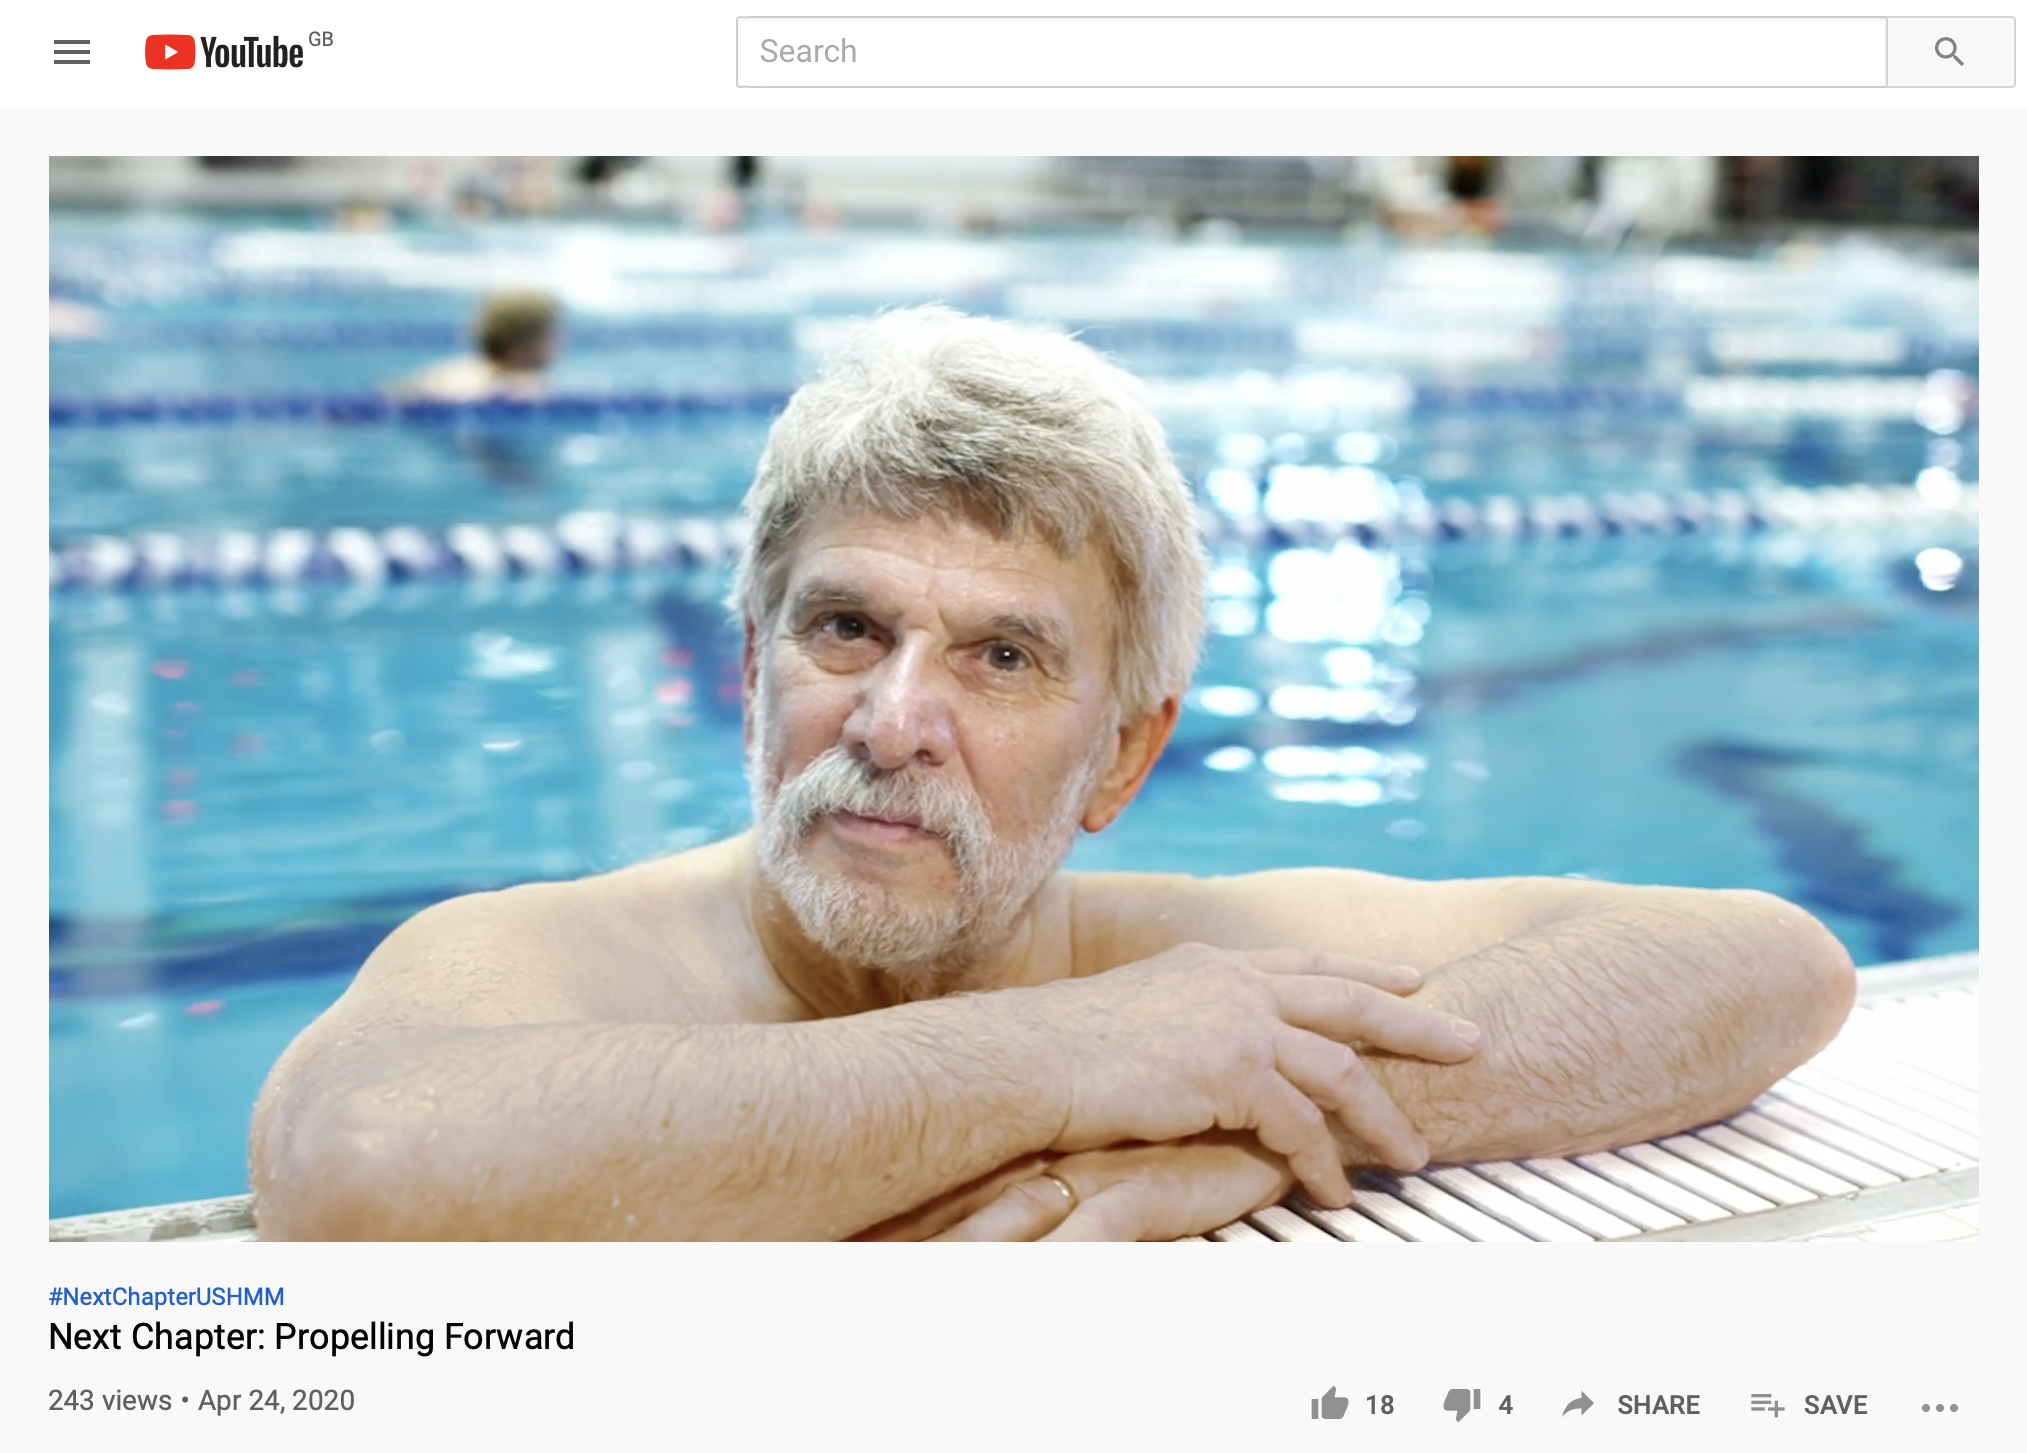 Peter Gorog leans poolside, looking directly into camera from the swimming pool